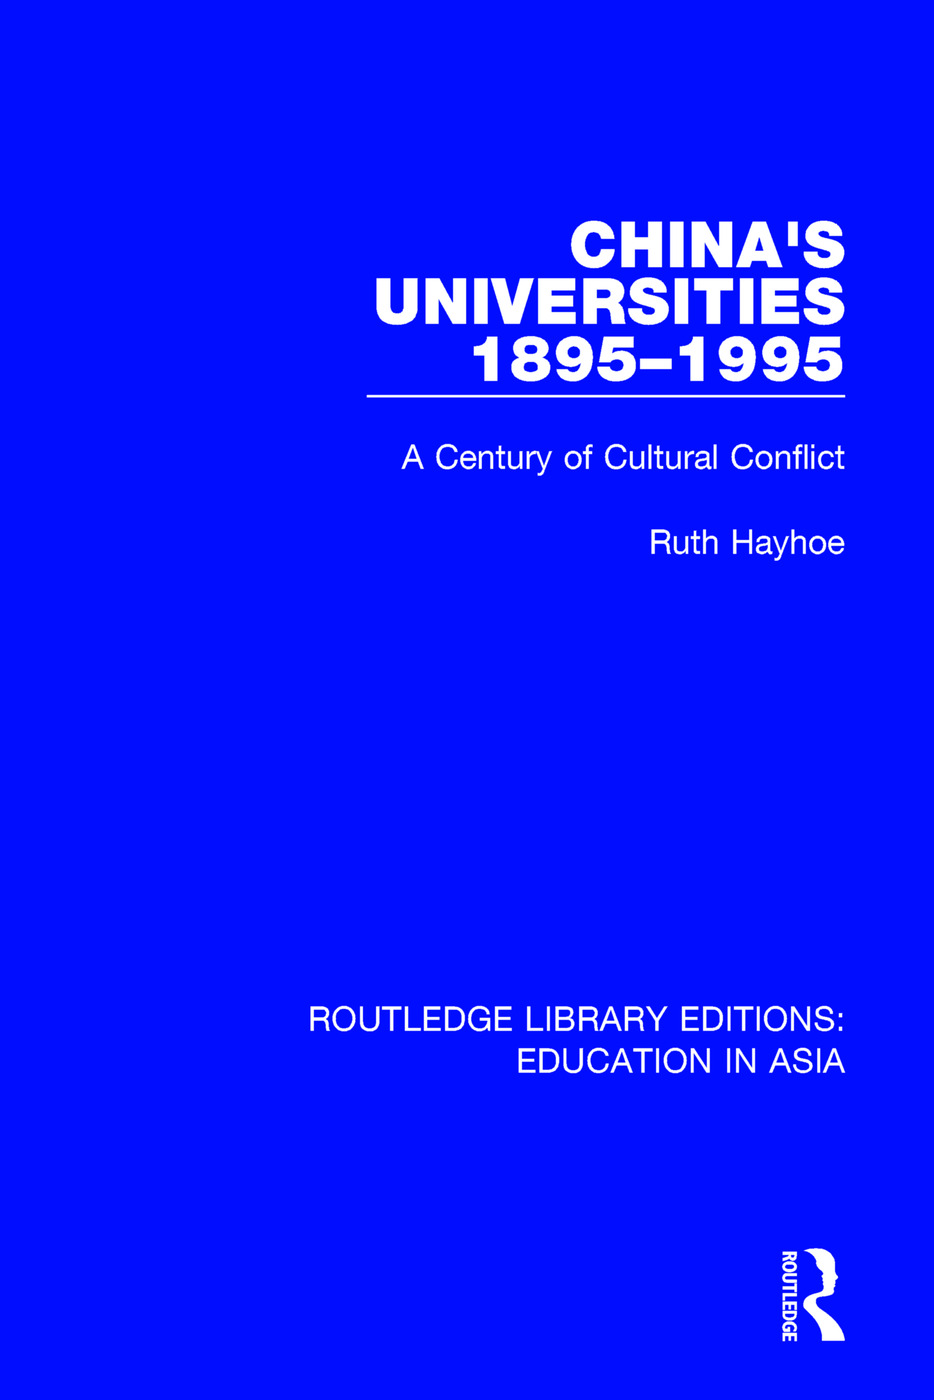 China's Universities, 1895-1995: A Century of Cultural Conflict book cover